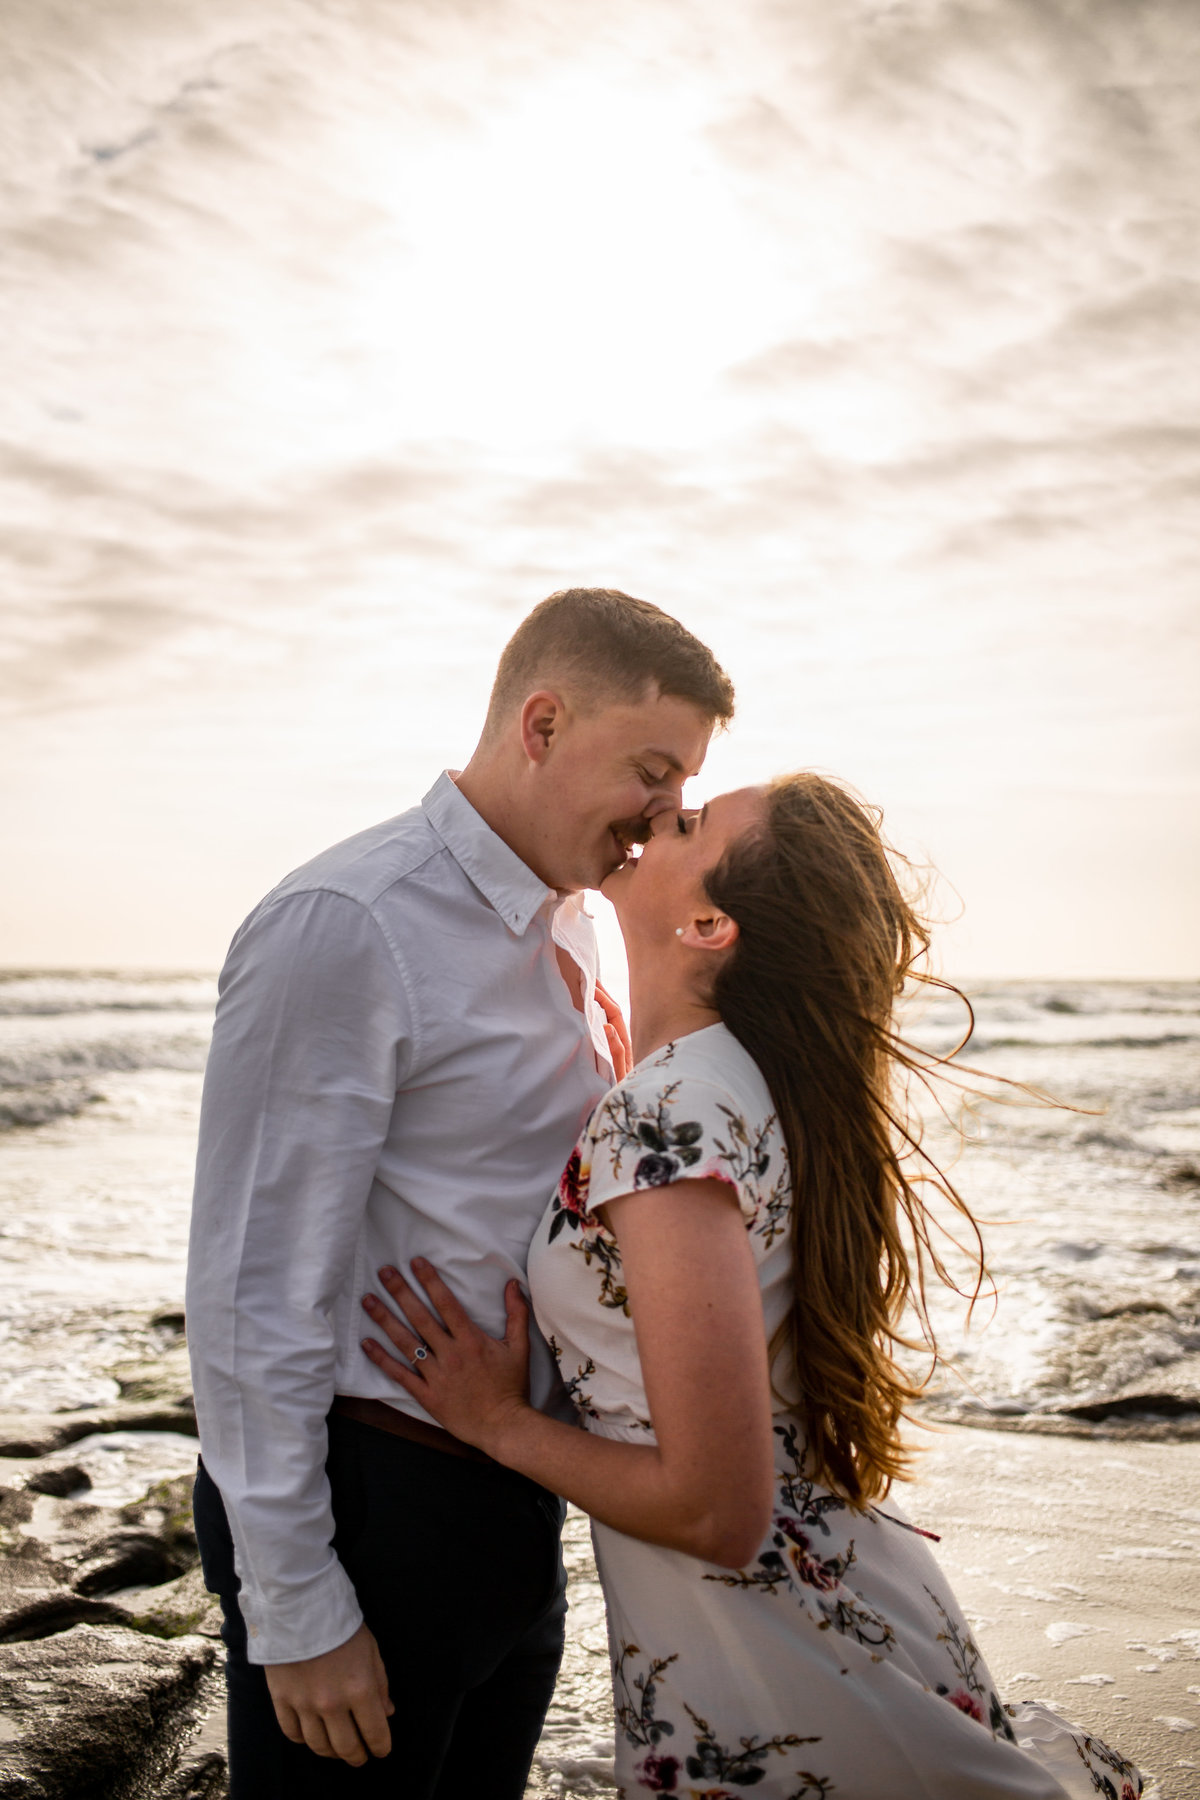 Boho_Engagement_Beach-59